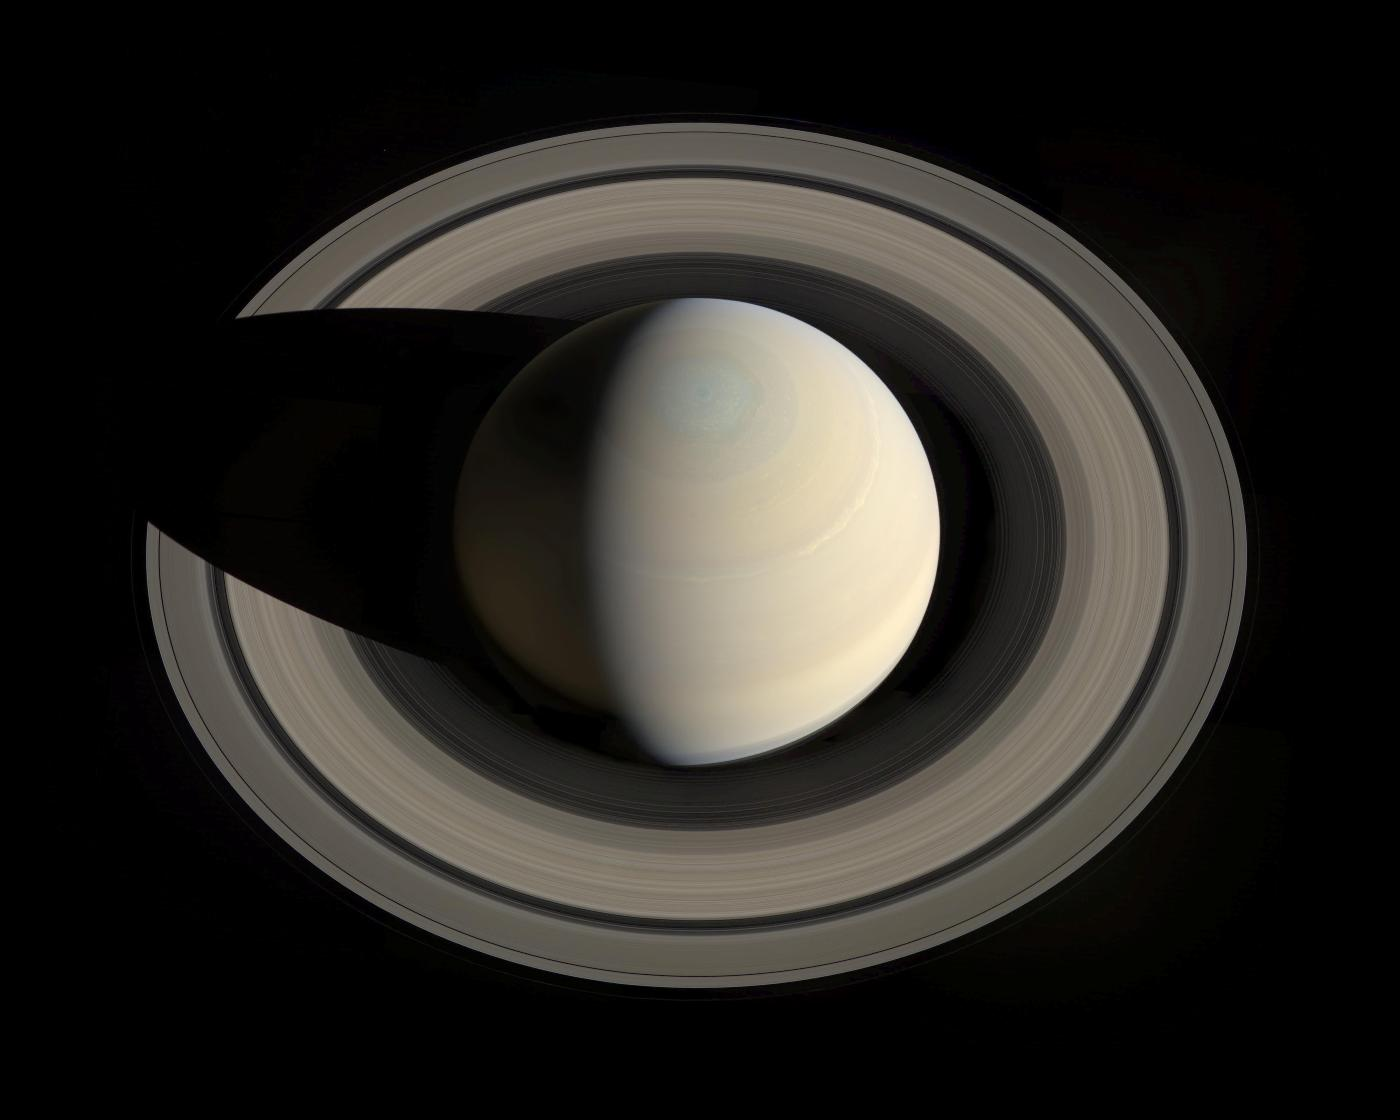 Saturn's glorious rings